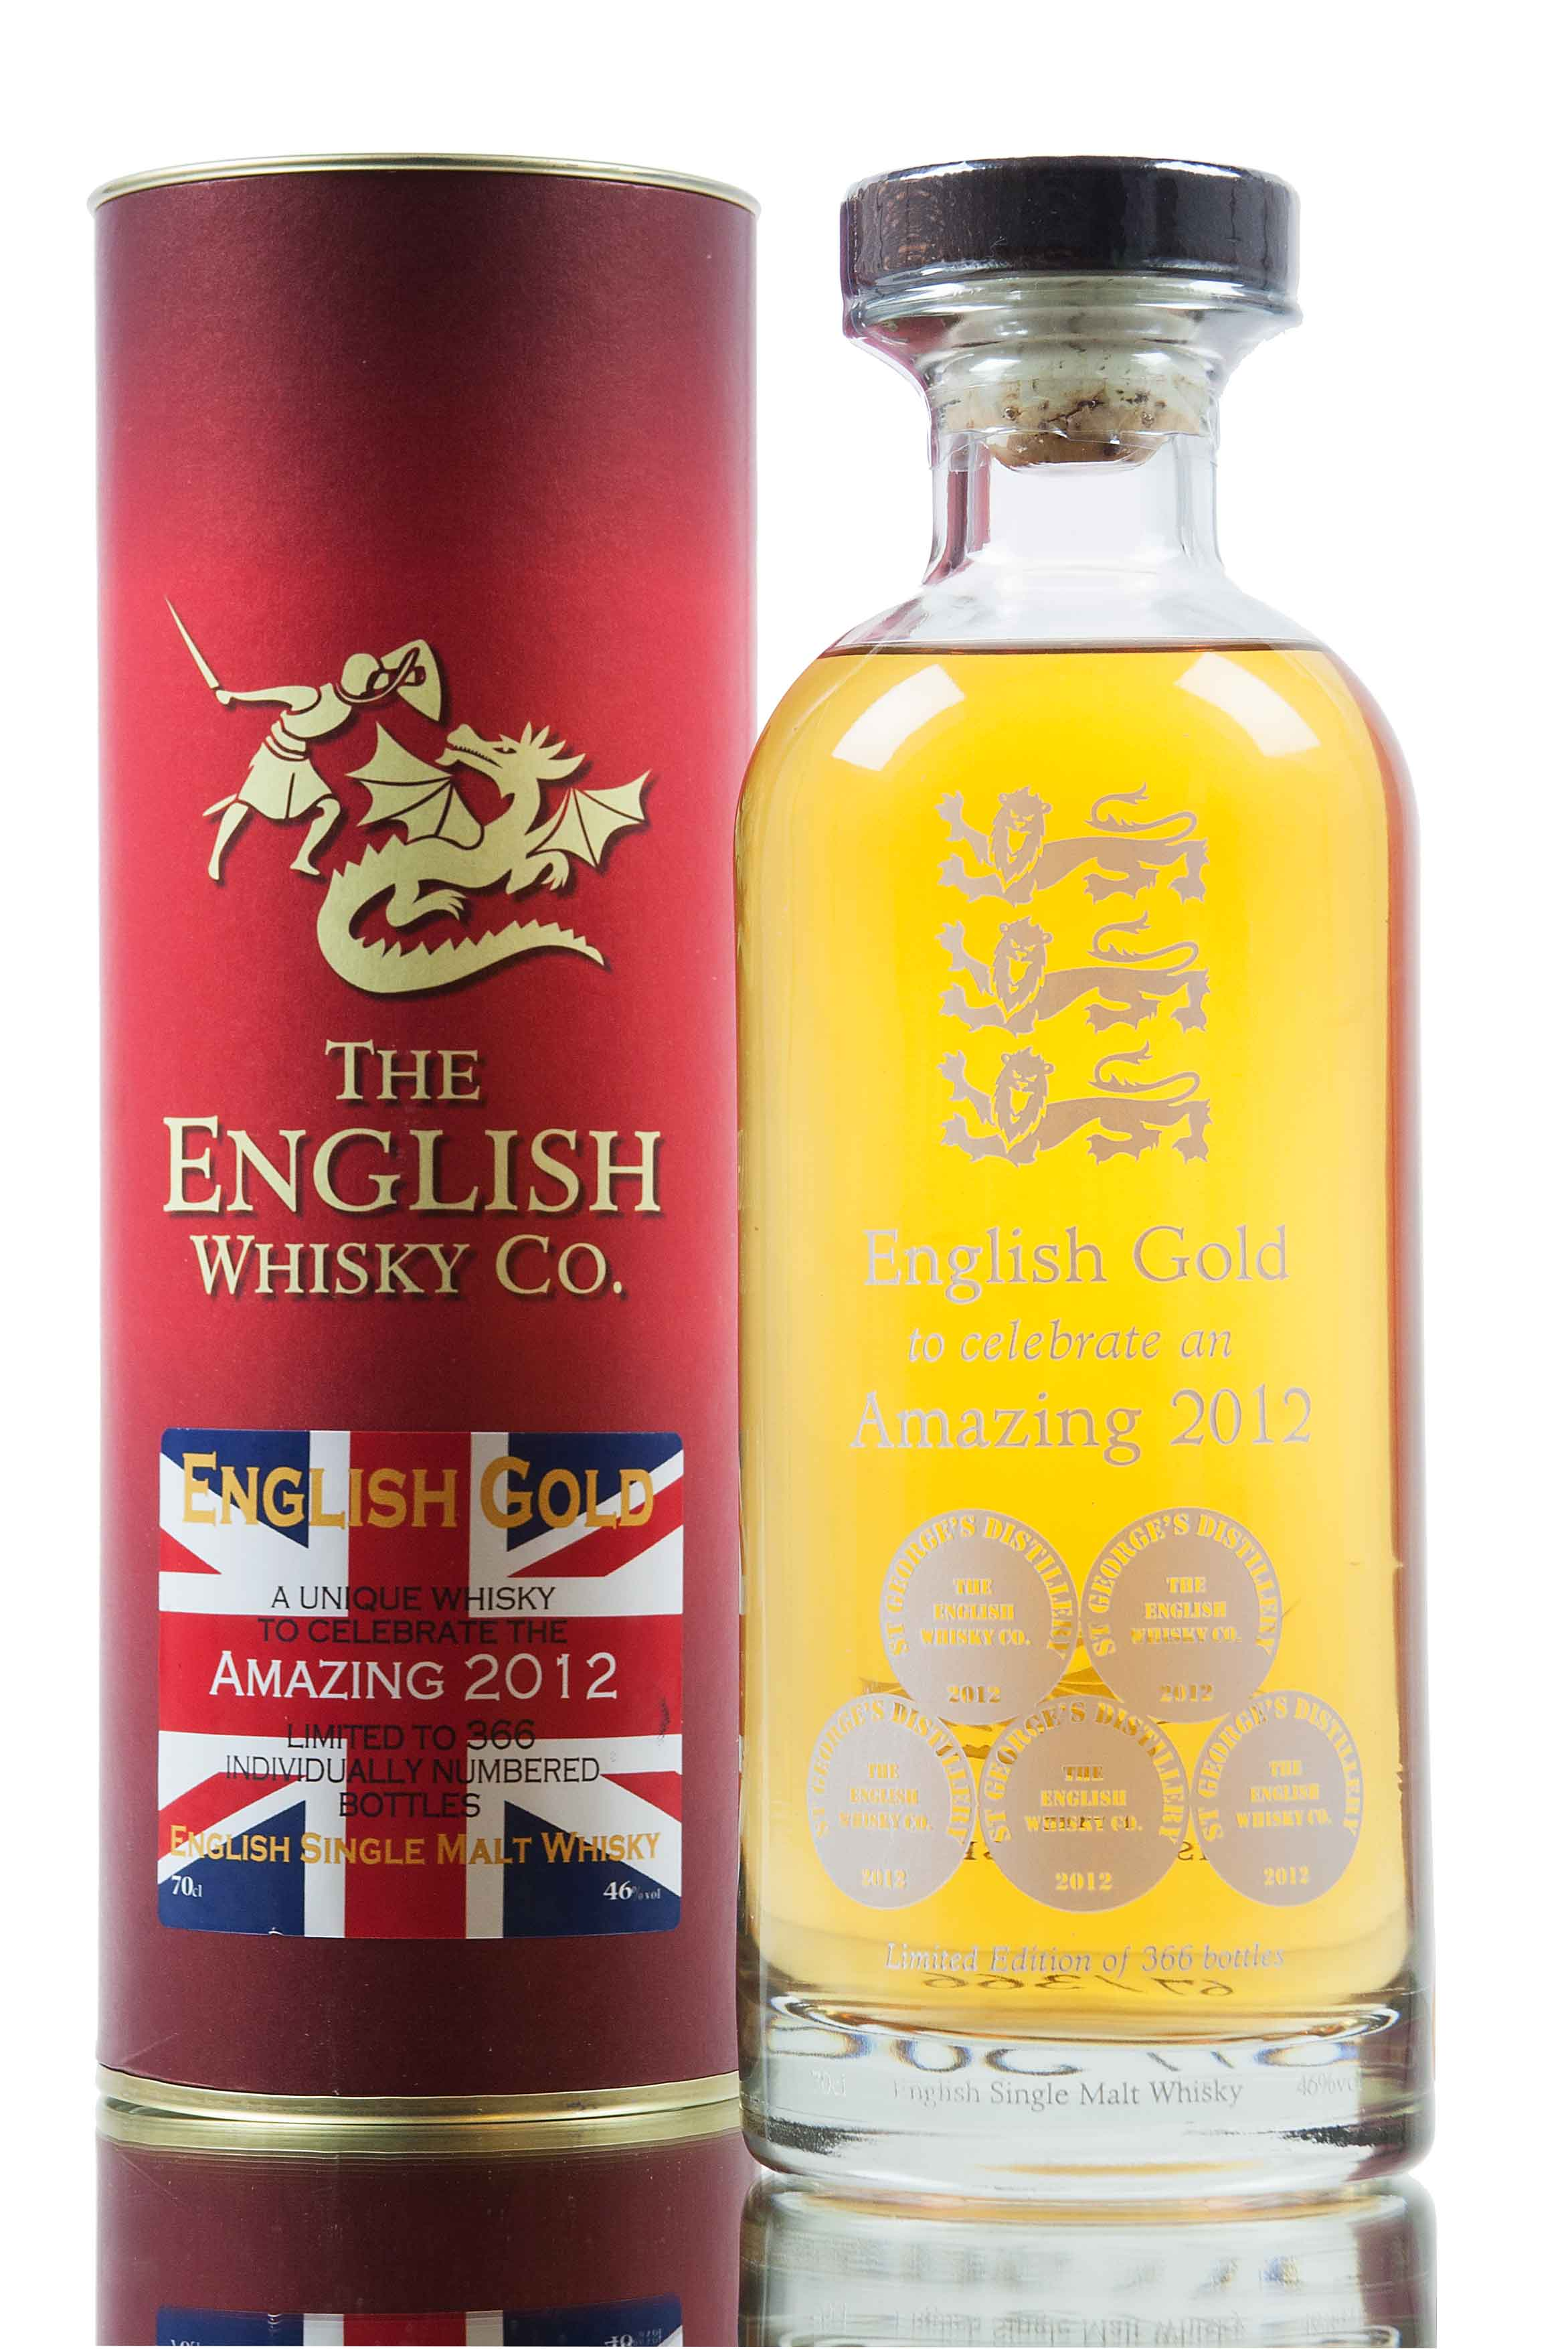 English Whisky Co / English Gold Amazing 2012